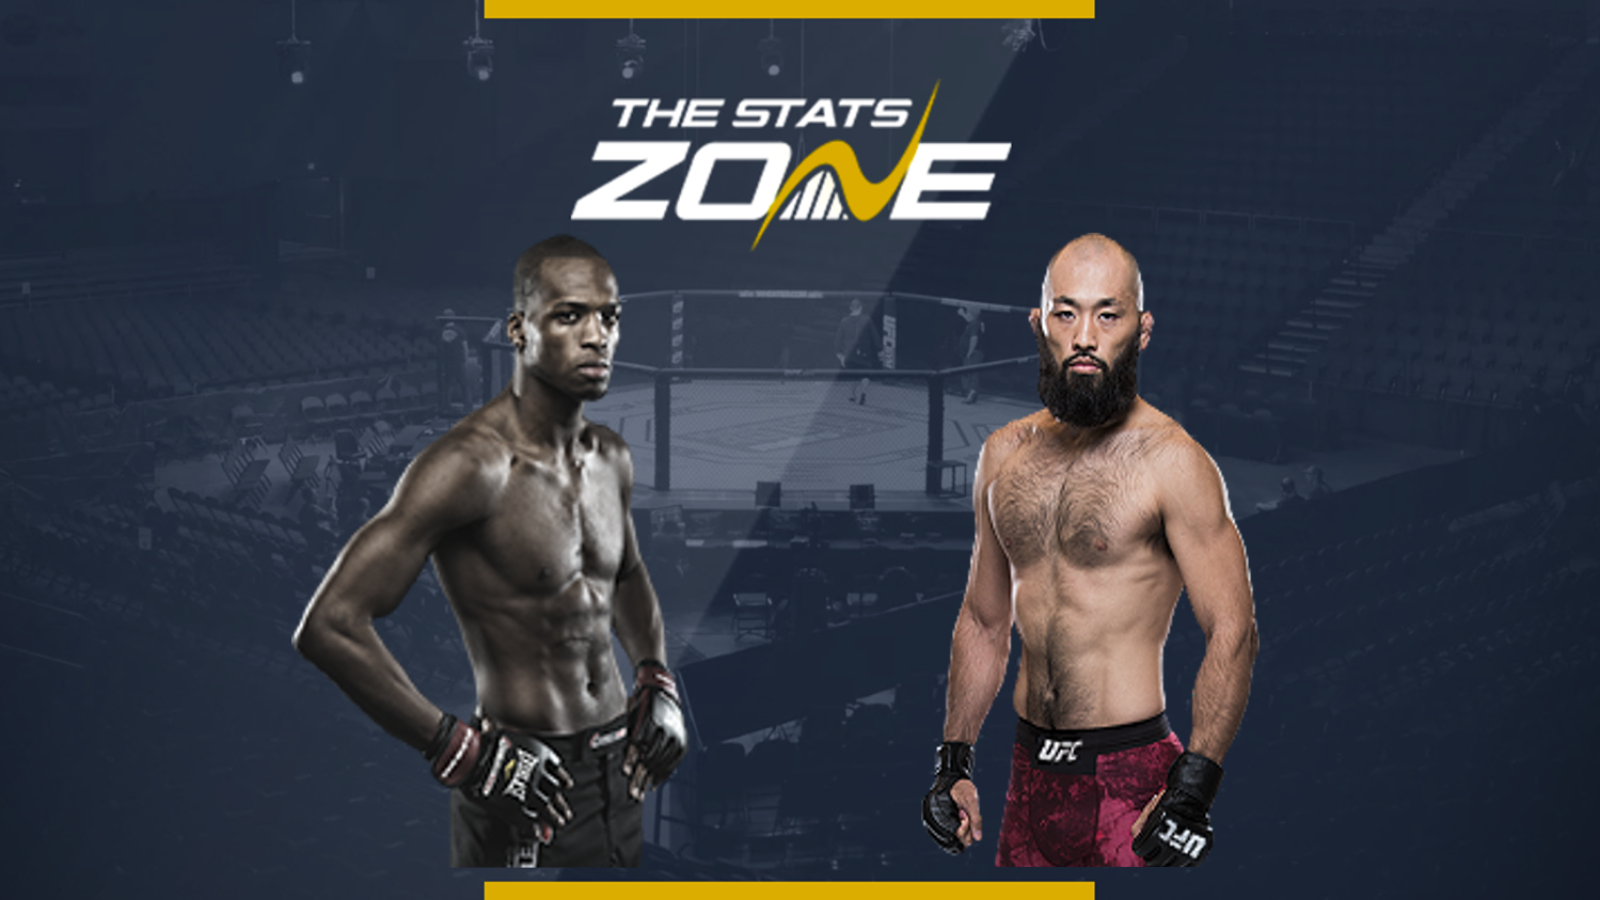 Mma Preview Michael Page Vs Shinsho Anzai At Bellator 237 The Stats Zone Mma news & results for the ultimate fighting championship (ufc), strikeforce & more mixed 10 brazilian mma talents rose under tricky circumstances in 2020, hoping for bigger opportunities next in. mma preview michael page vs shinsho